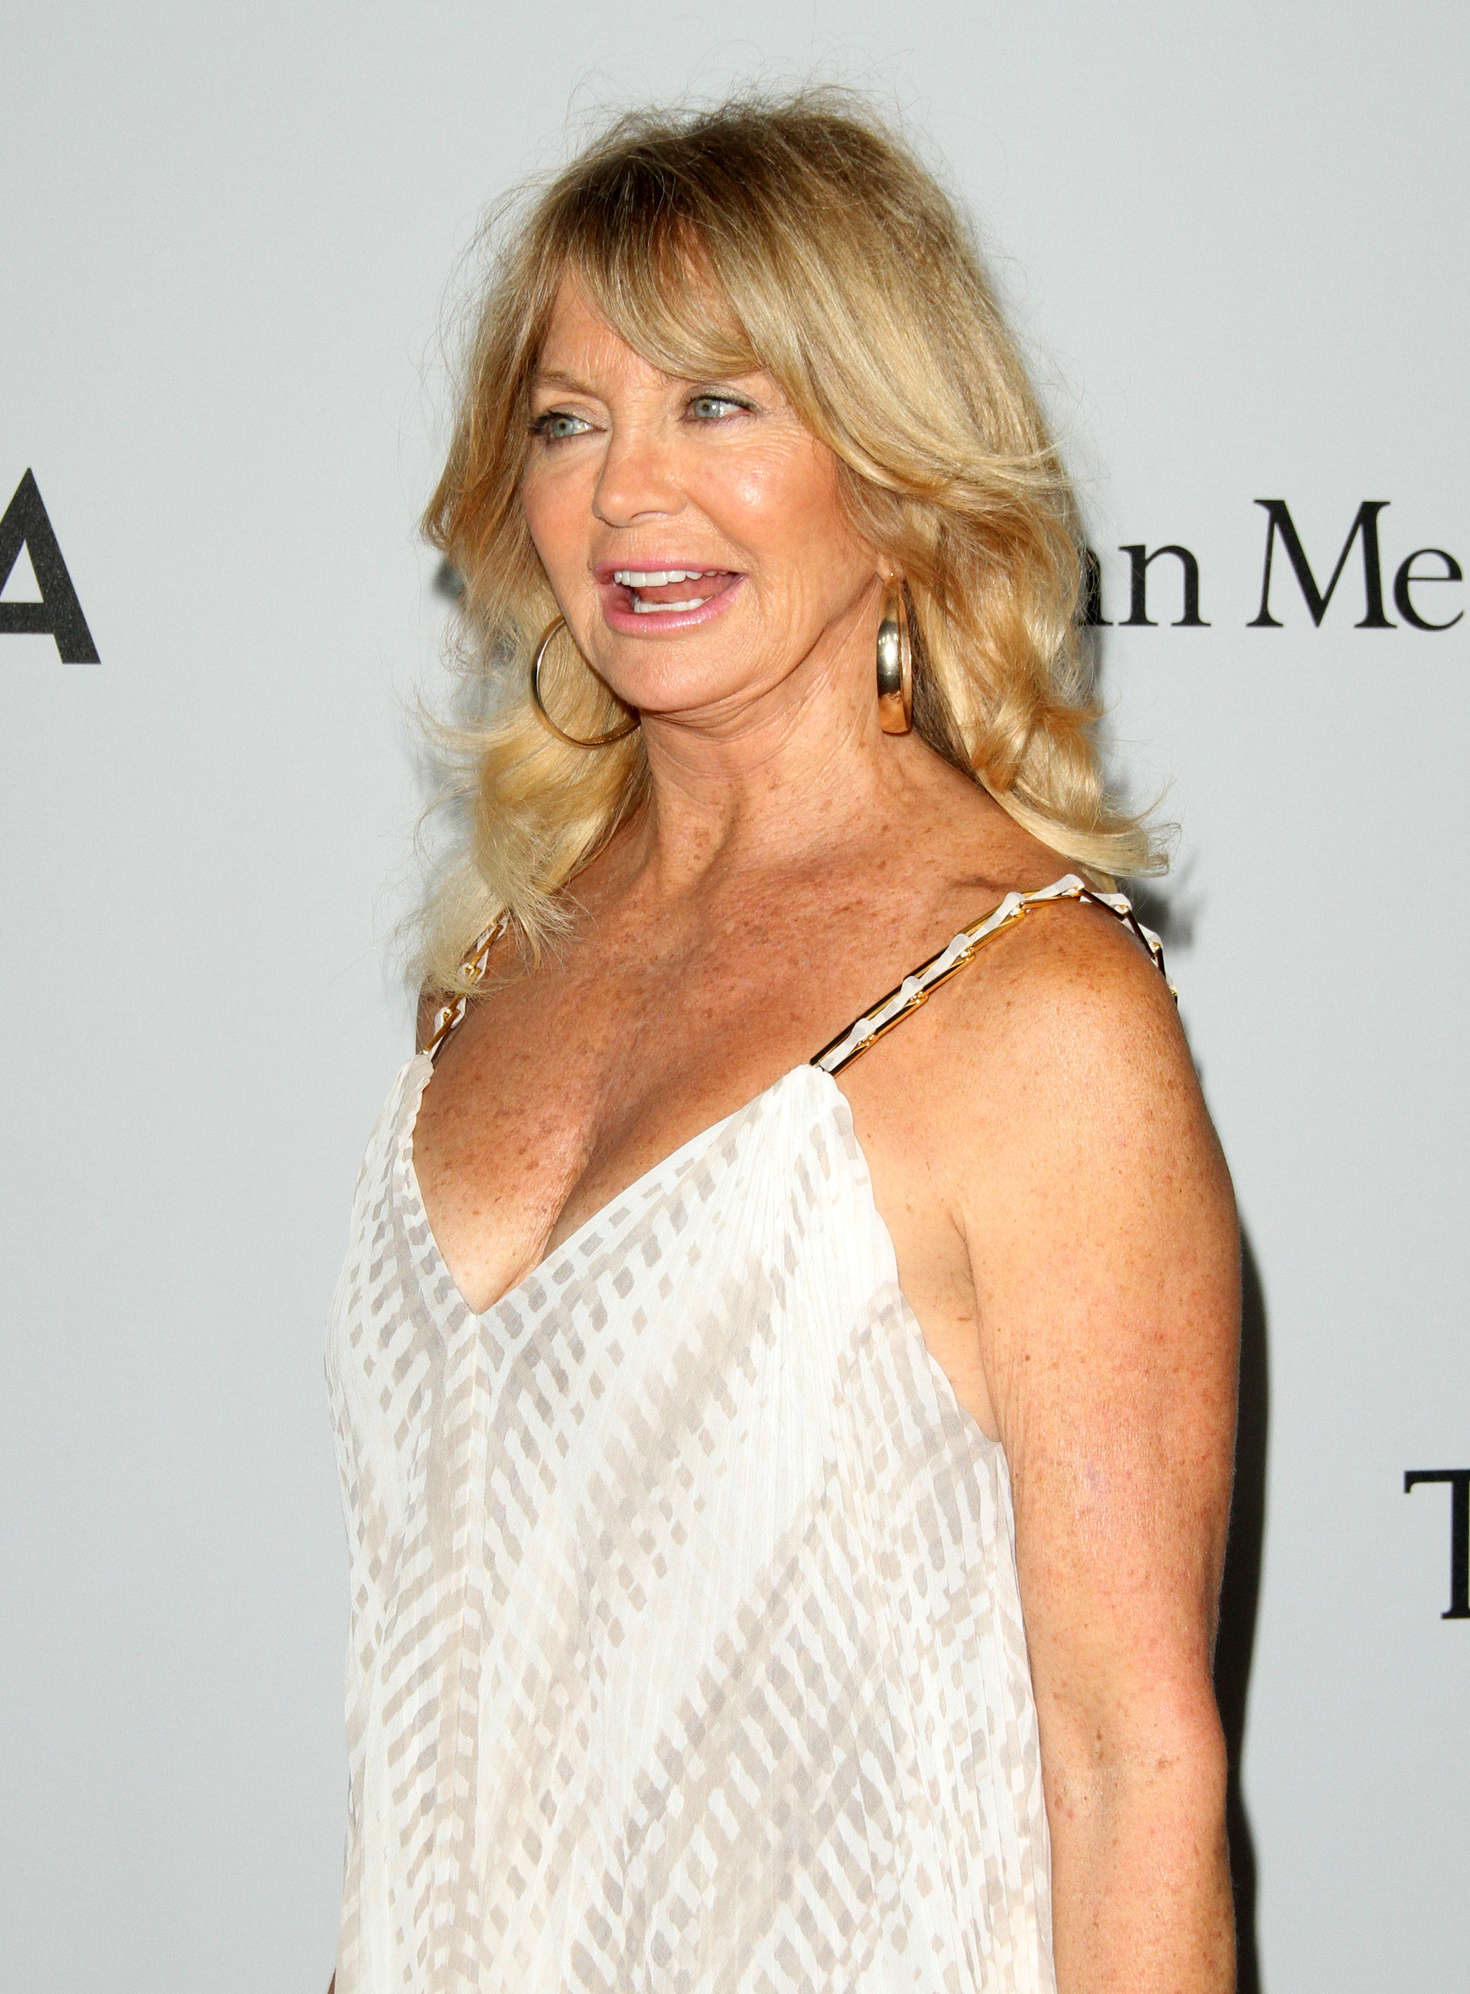 Goldie Hawn Launch of The Parker Institute for Cancer Immunotherapy in Los Angeles